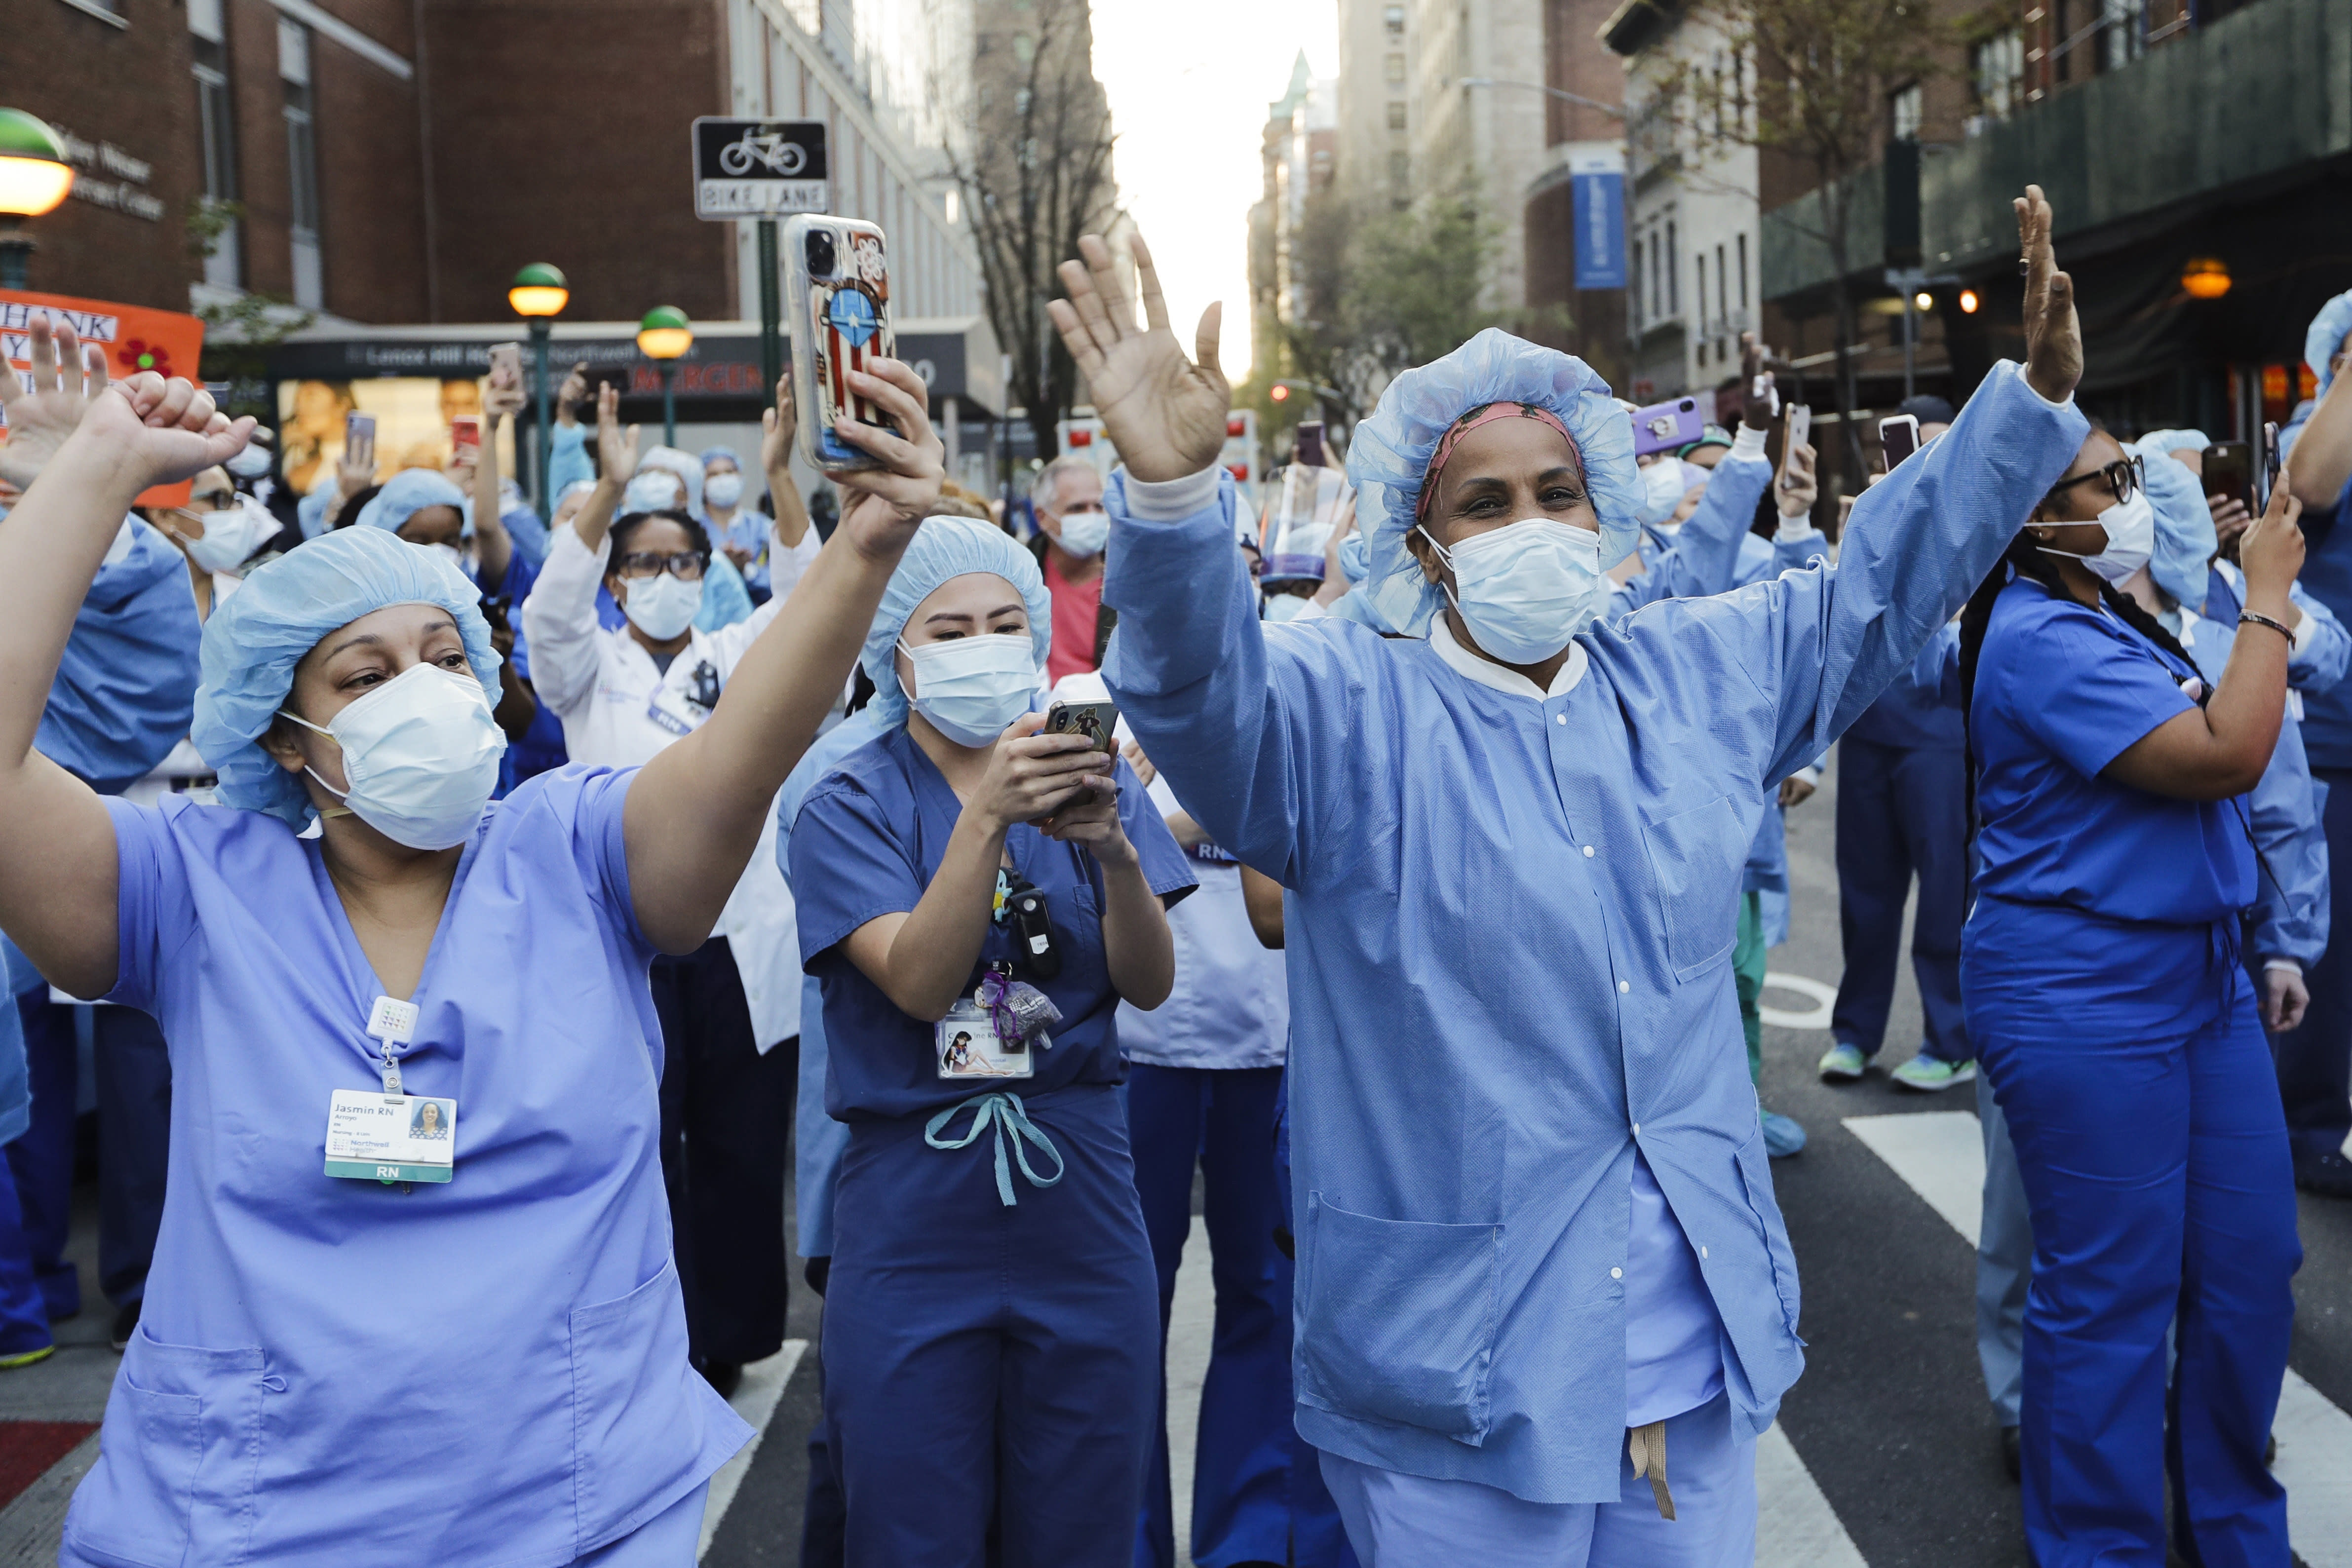 FILE- In this April 15, 2020 file photo, nurses and medical workers react as police officers and pedestrians cheer them outside Lenox Hill Hospital in New York. Nurses on the front lines of New York's COVID-19 pandemic are calling for the state to enact minimum staffing standards ahead of another wave of infections.(AP Photo/Frank Franklin II)